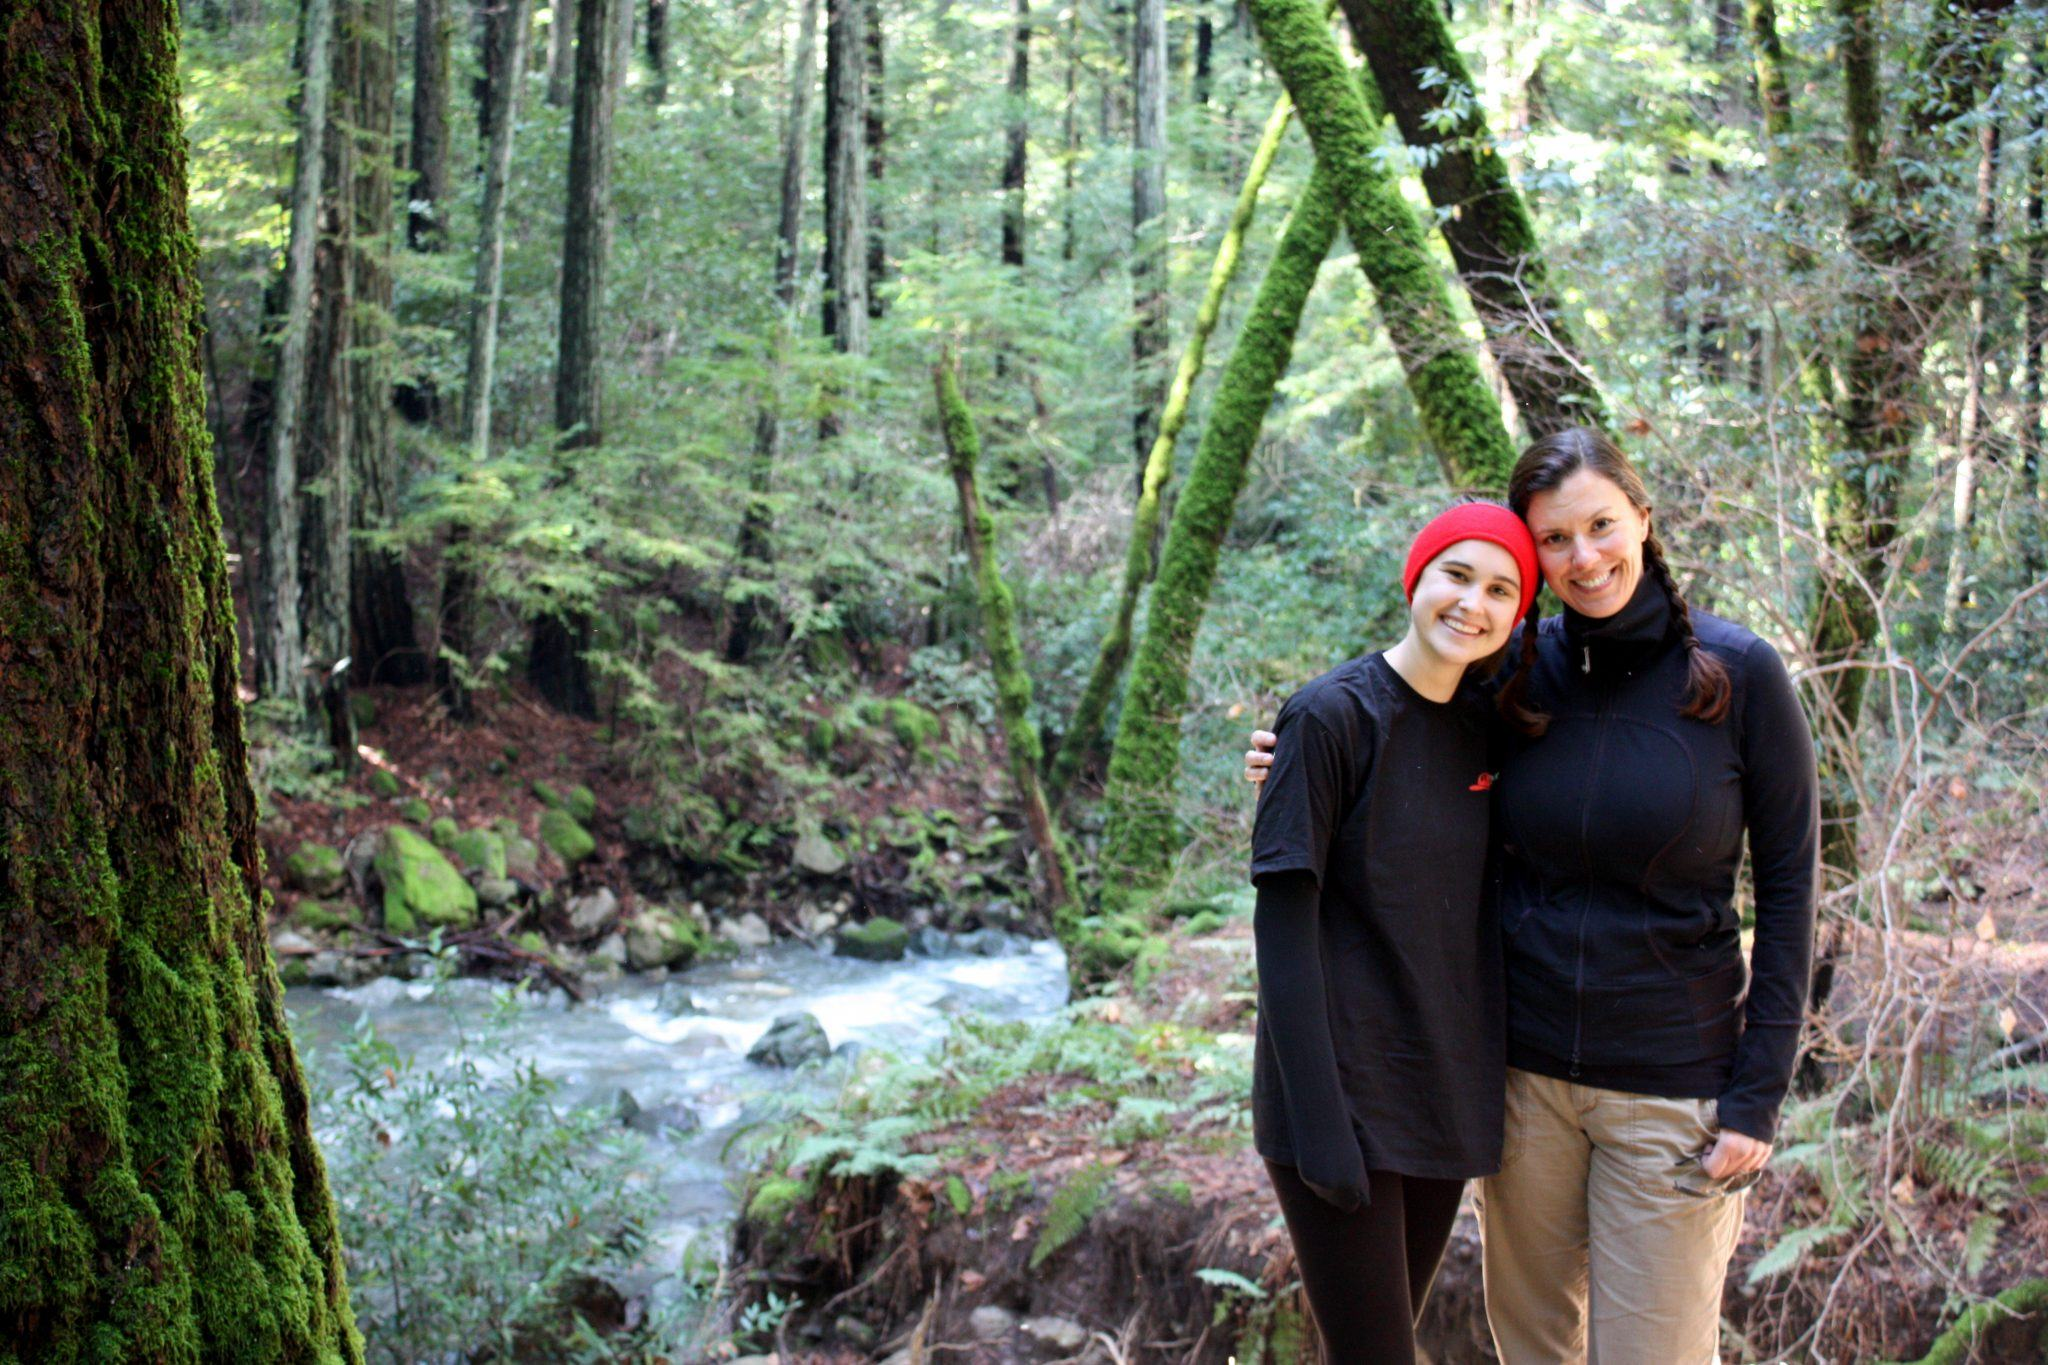 """Things for the """"Outdoorsy Type"""" to do in Sonoma Valley"""